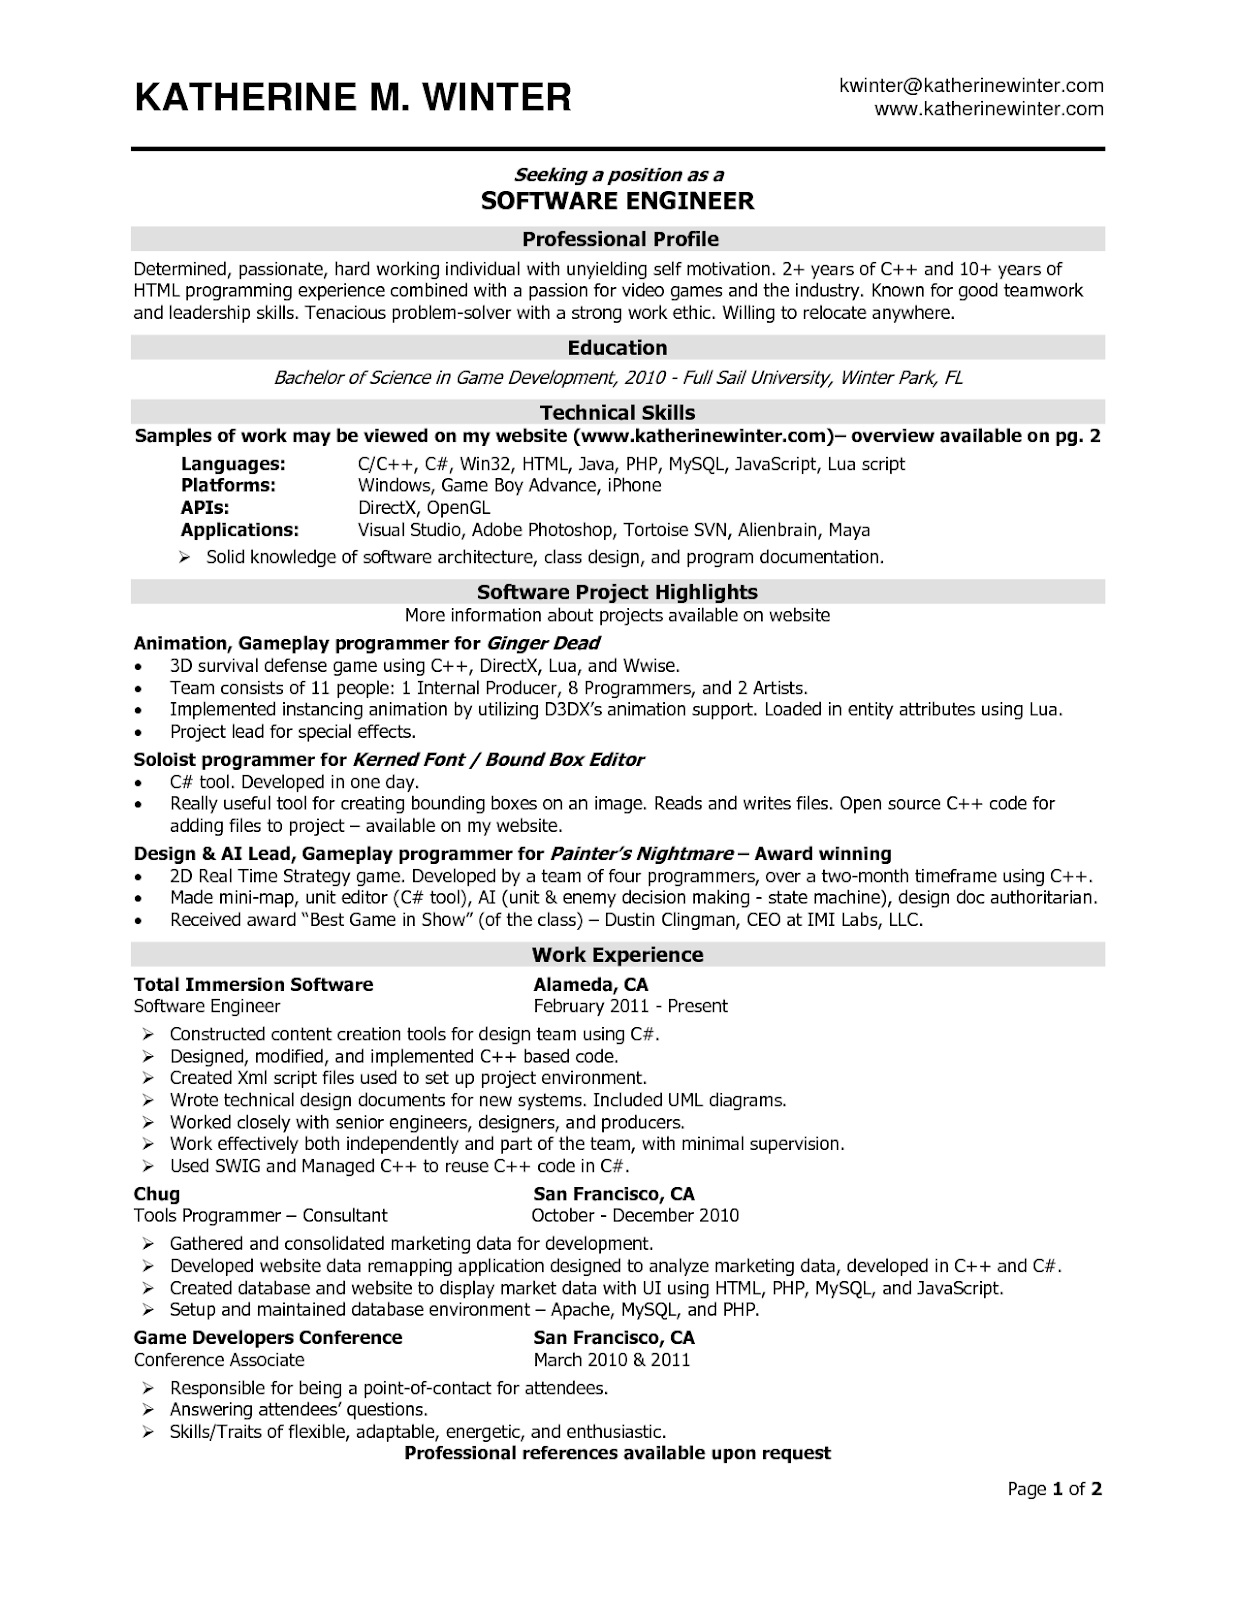 software engineer sample resume software engineer resume samples sample resumes software engineer sample resume 1214 network - Network Engineer Resume Objective